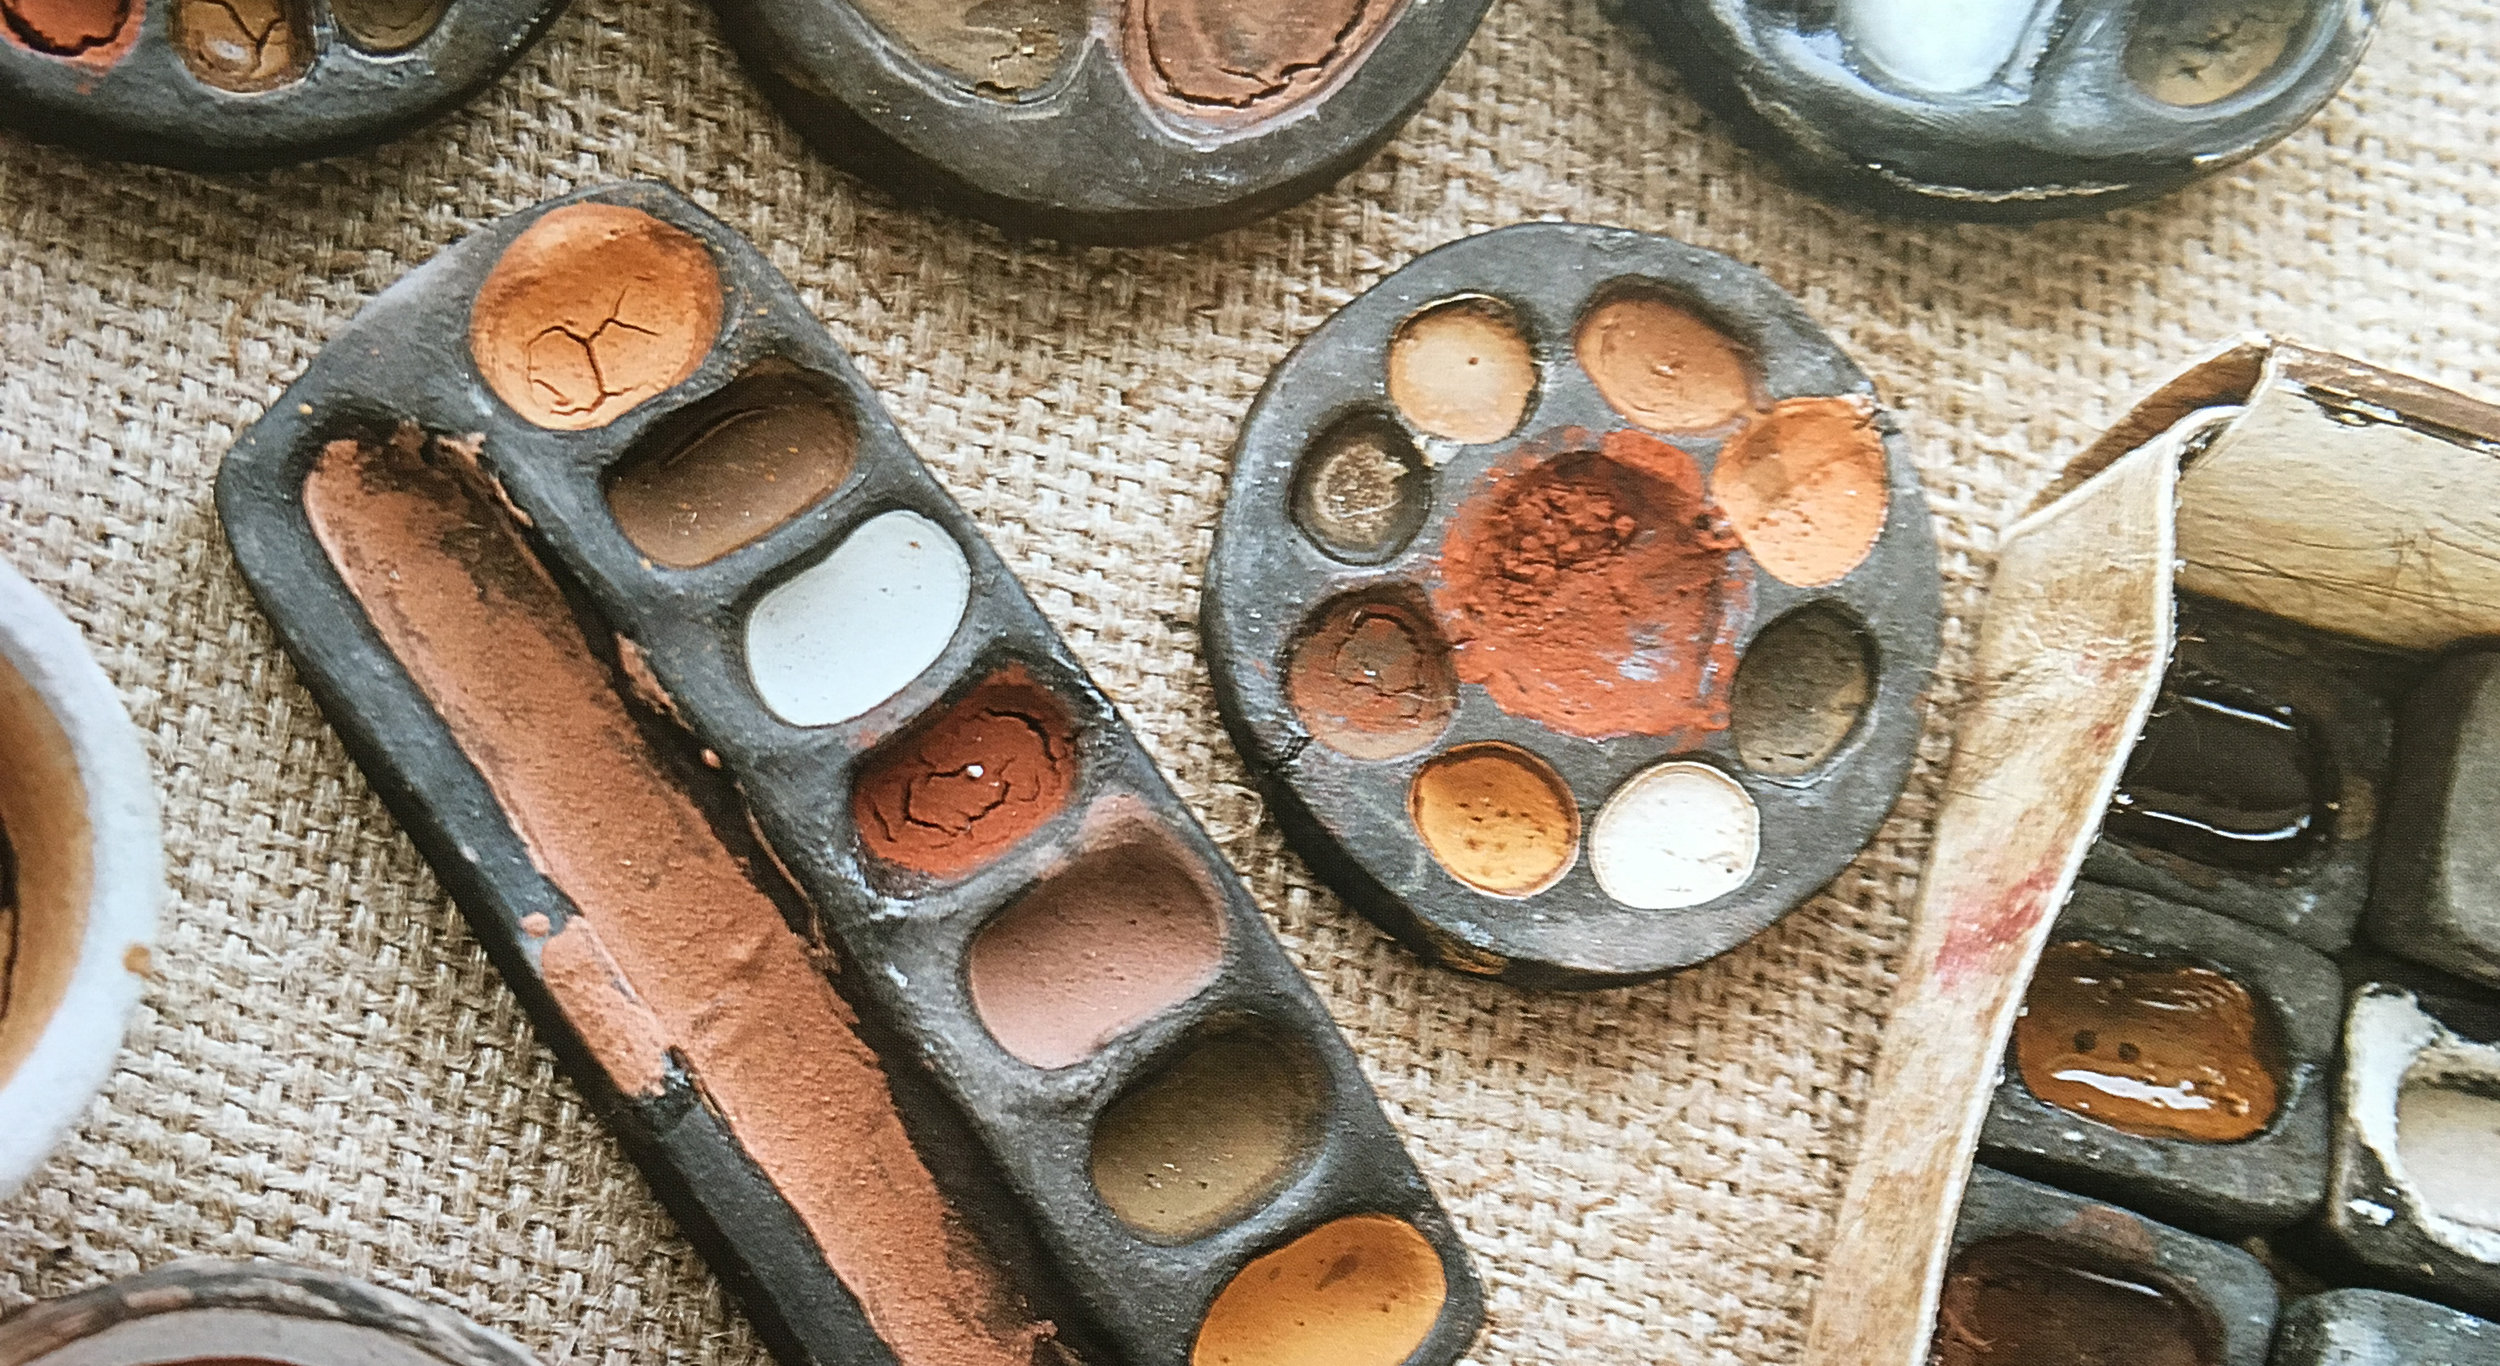 Nick Neddo's palettes: ochres in clay vessels made from foraged wild clay, fired in a fire pit in the Vermont woods. Photo credit: Quarry Books, 2015.